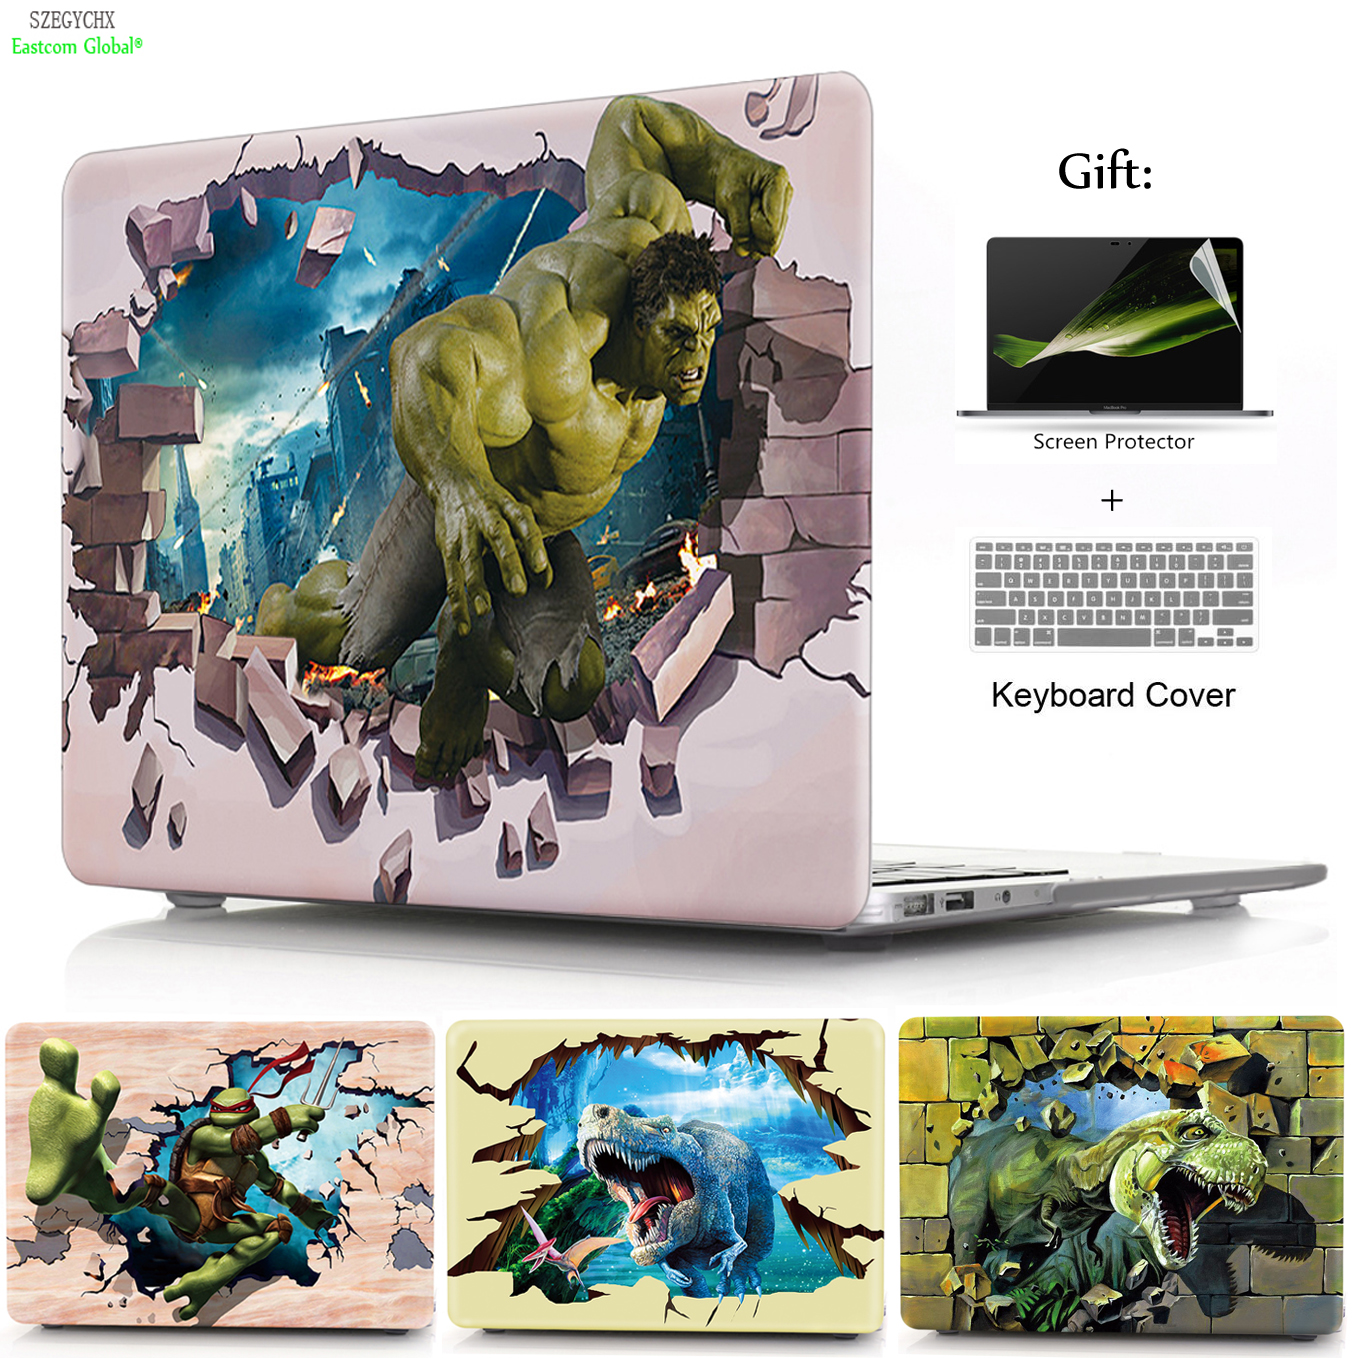 SZEGYCHX 3D Dinosaur Elephant Colorful Painting Hard Case Shell For Macbook Air Pro Retina 11 12 13 15 13.3 inch with Touch Bar